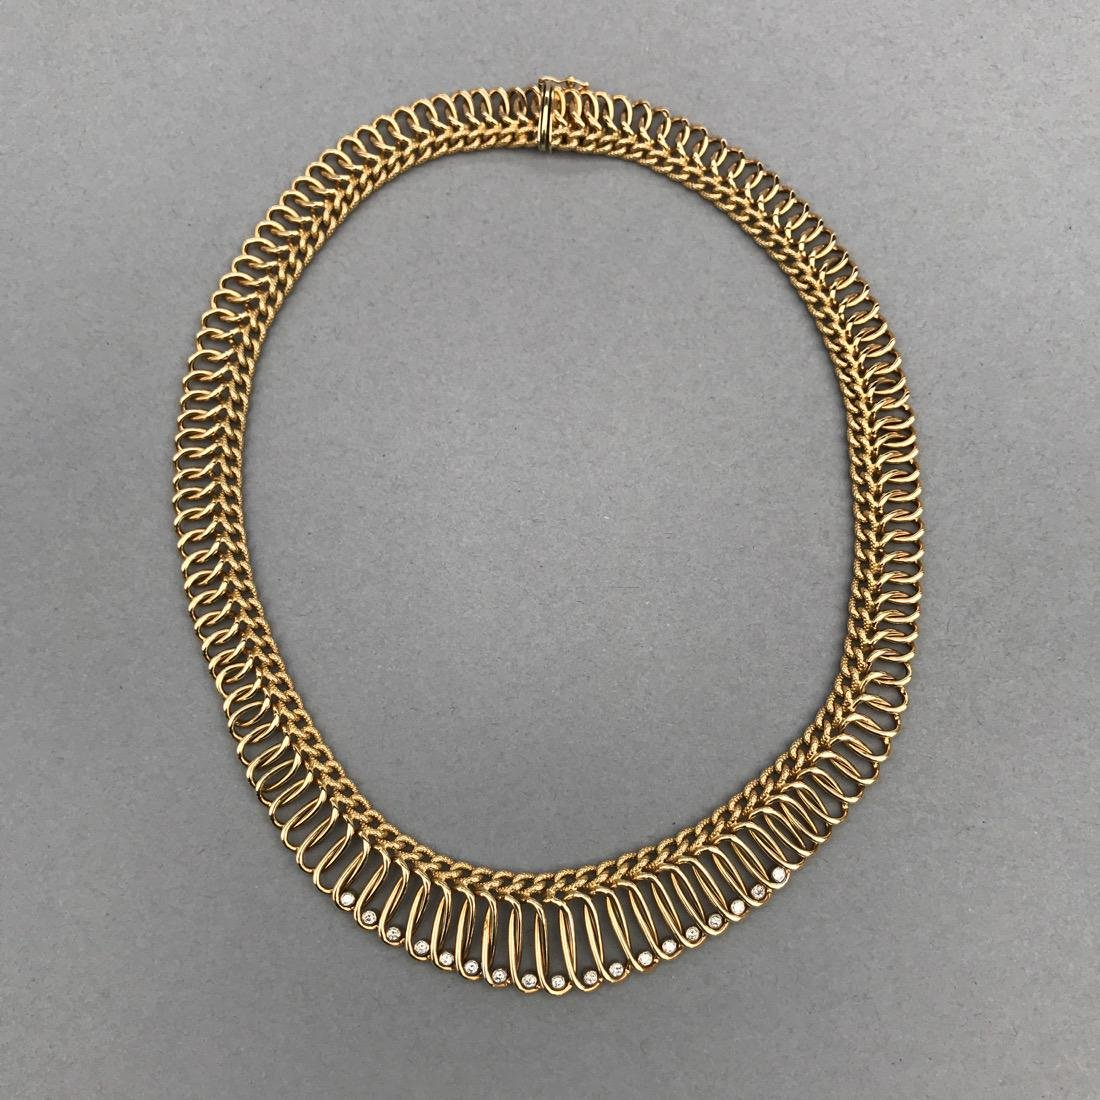 14K Gold Necklace with 18 Diamonds